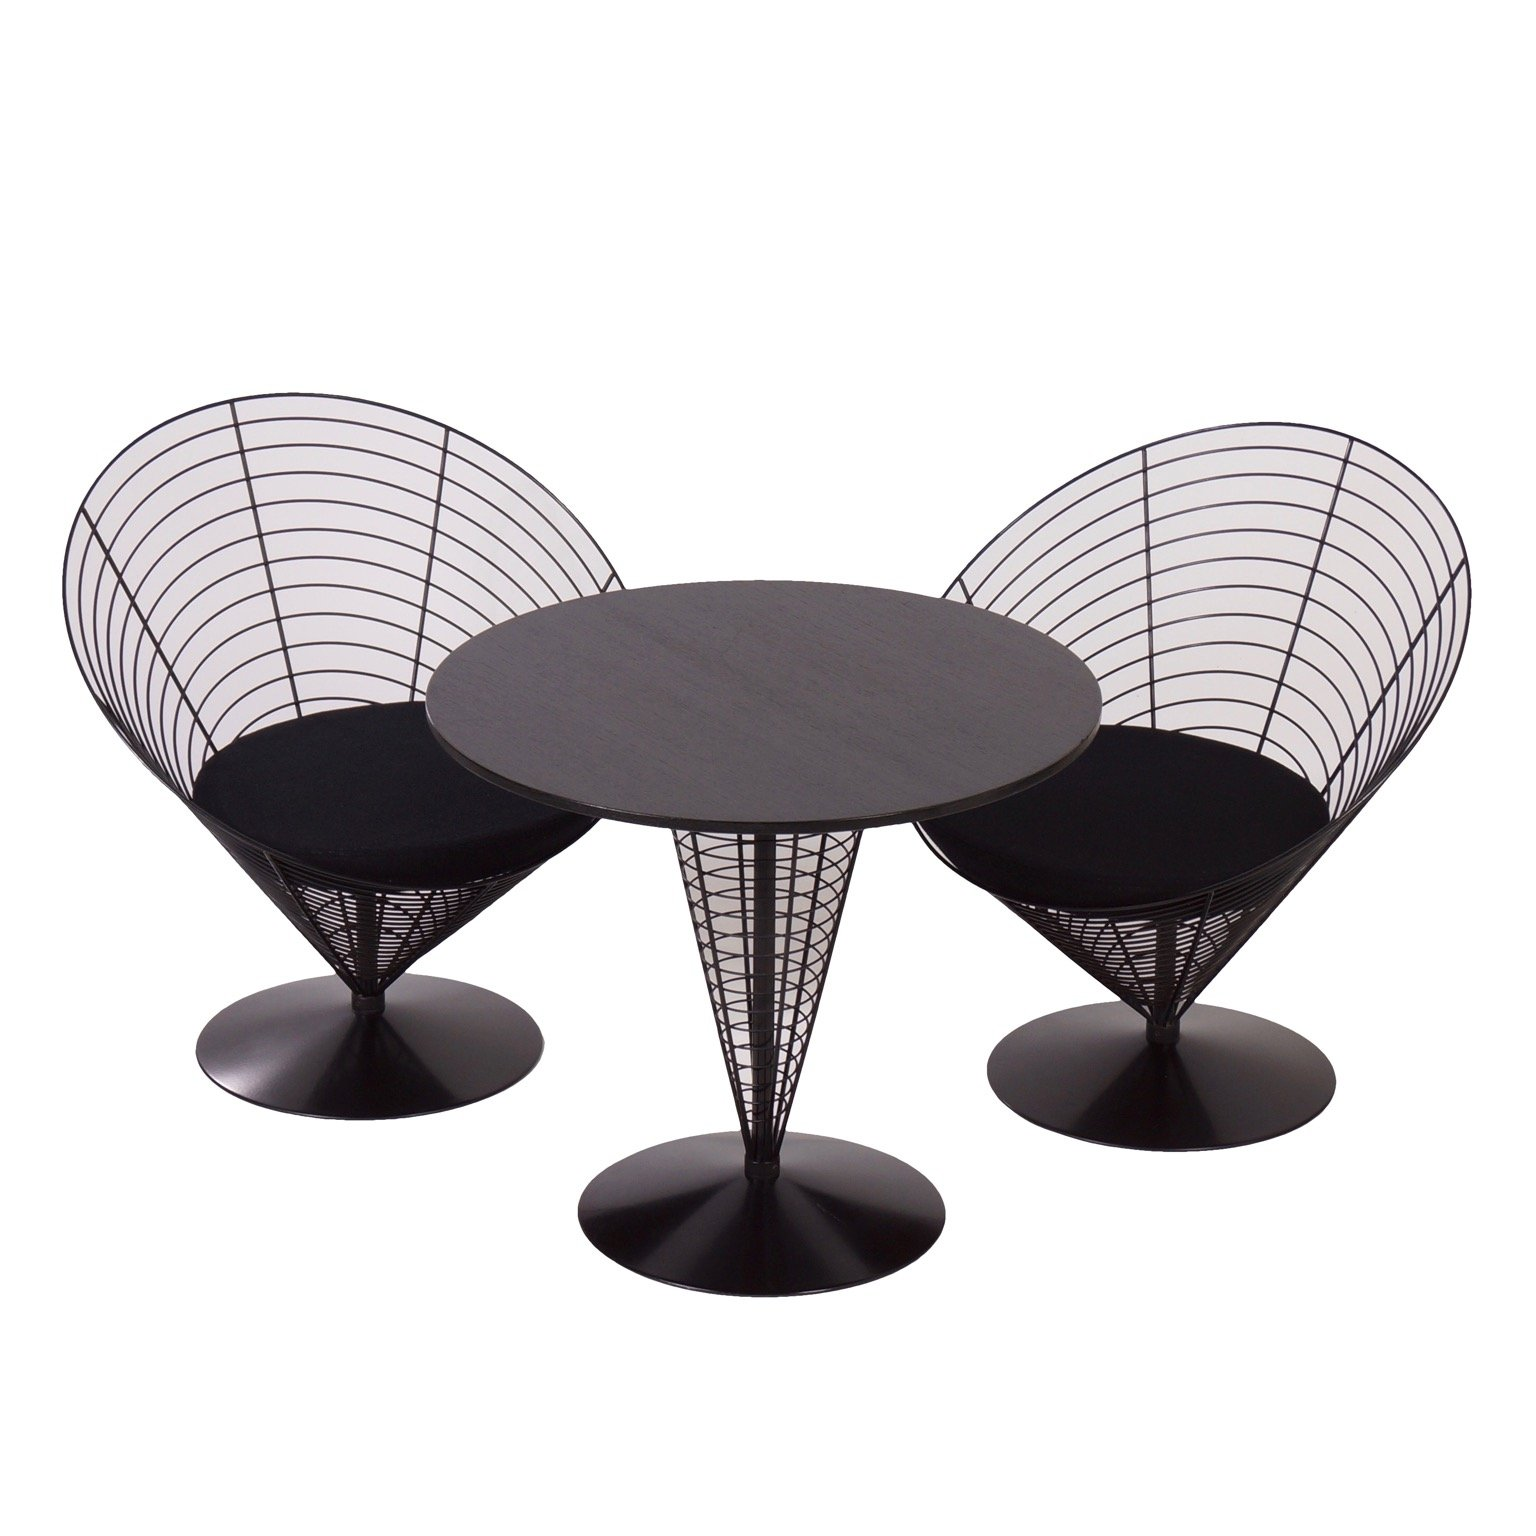 cone table with two cone chairs by verner panton from fritz hansen 1980s 64195. Black Bedroom Furniture Sets. Home Design Ideas